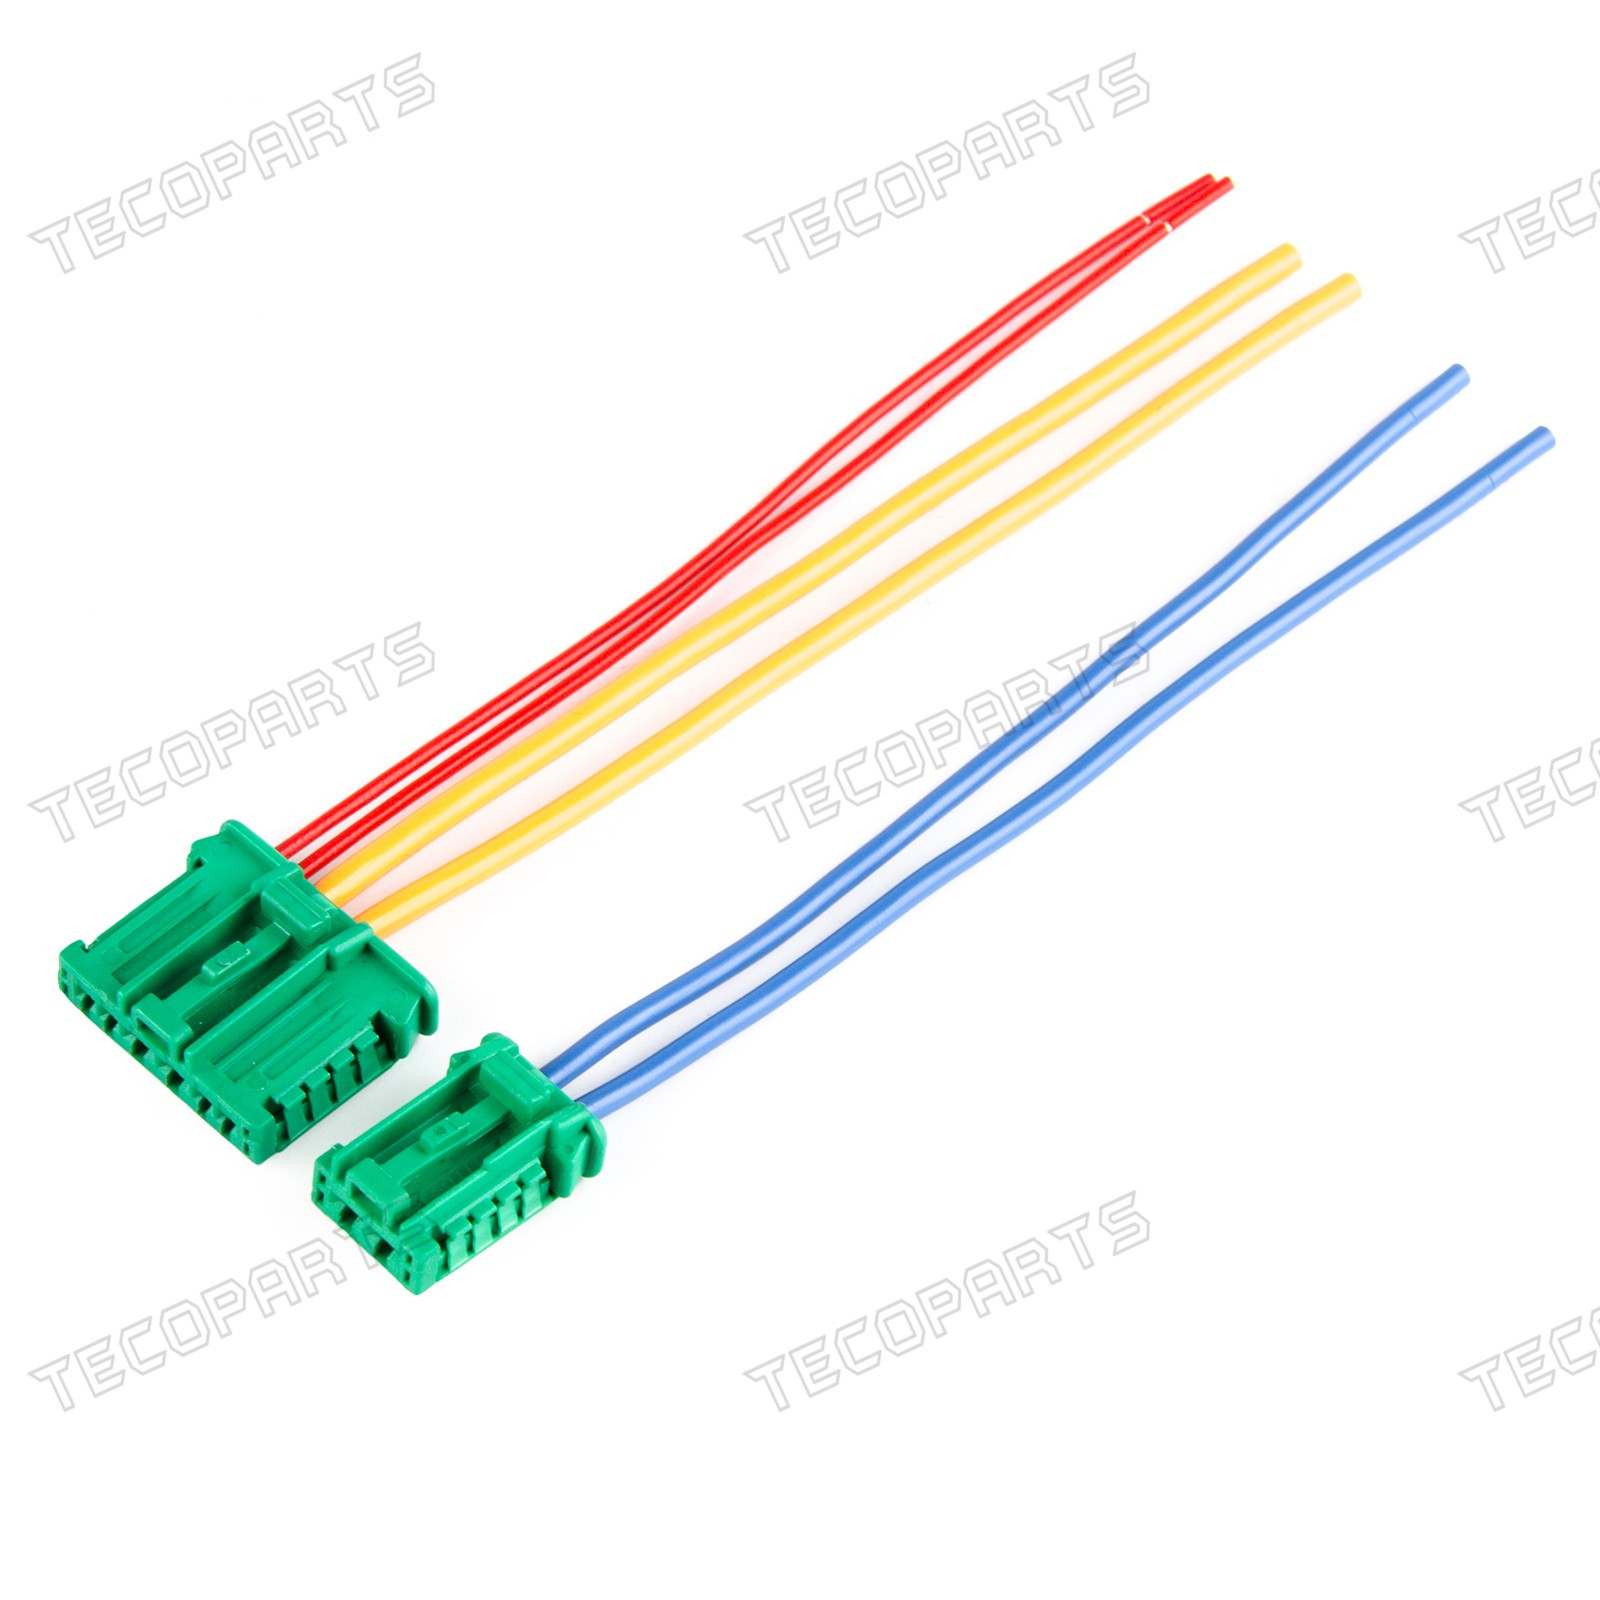 Heater Blower Resistor Plugs Repair Wiring Harness For Peugeot Citroen C2 Schematic Diagrams Renault